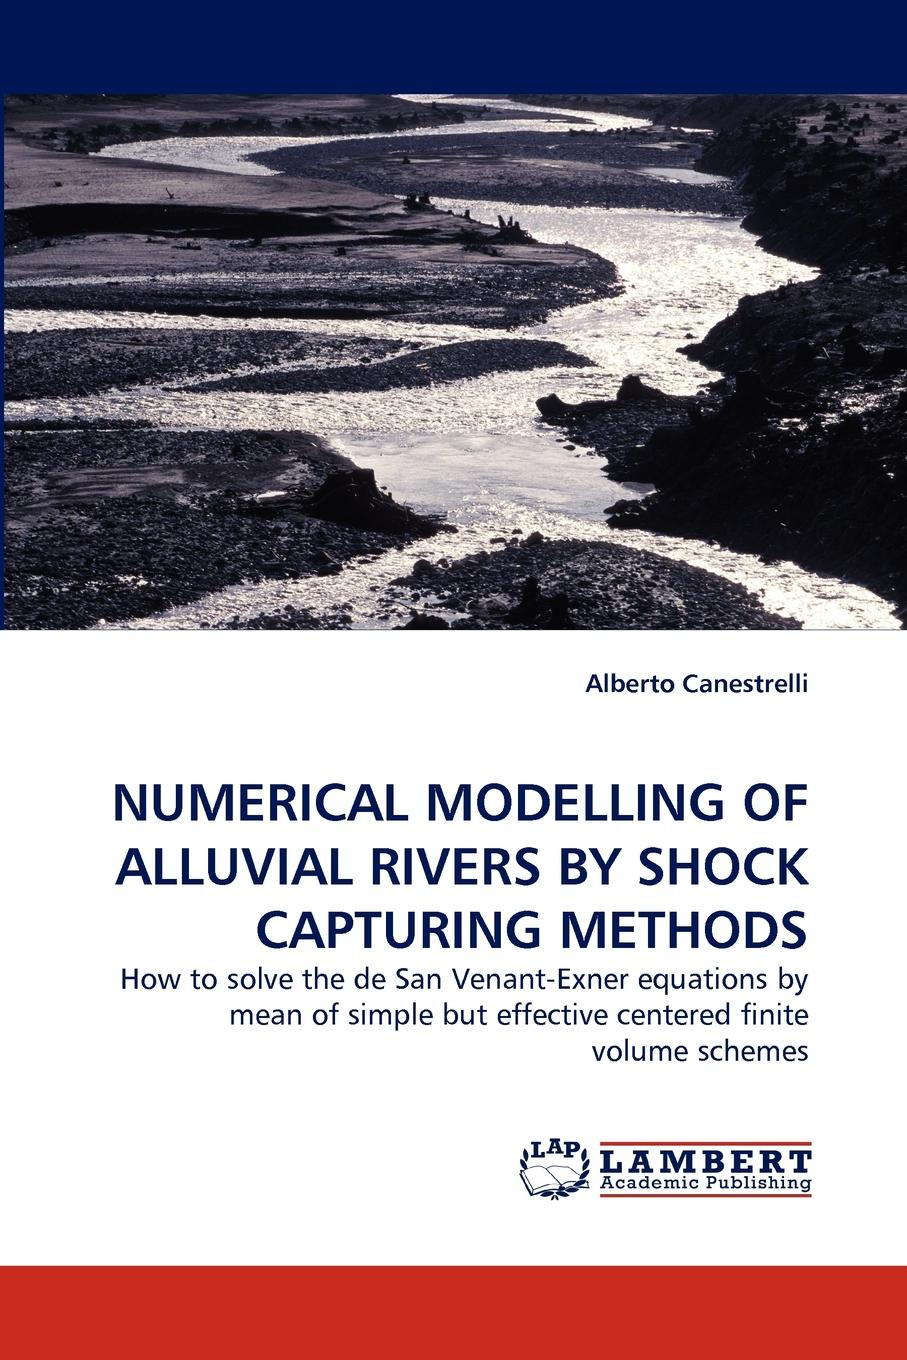 Alberto Canestrelli NUMERICAL MODELLING OF ALLUVIAL RIVERS BY SHOCK CAPTURING METHODS numerical simulation of sediment transport with meshfree methods